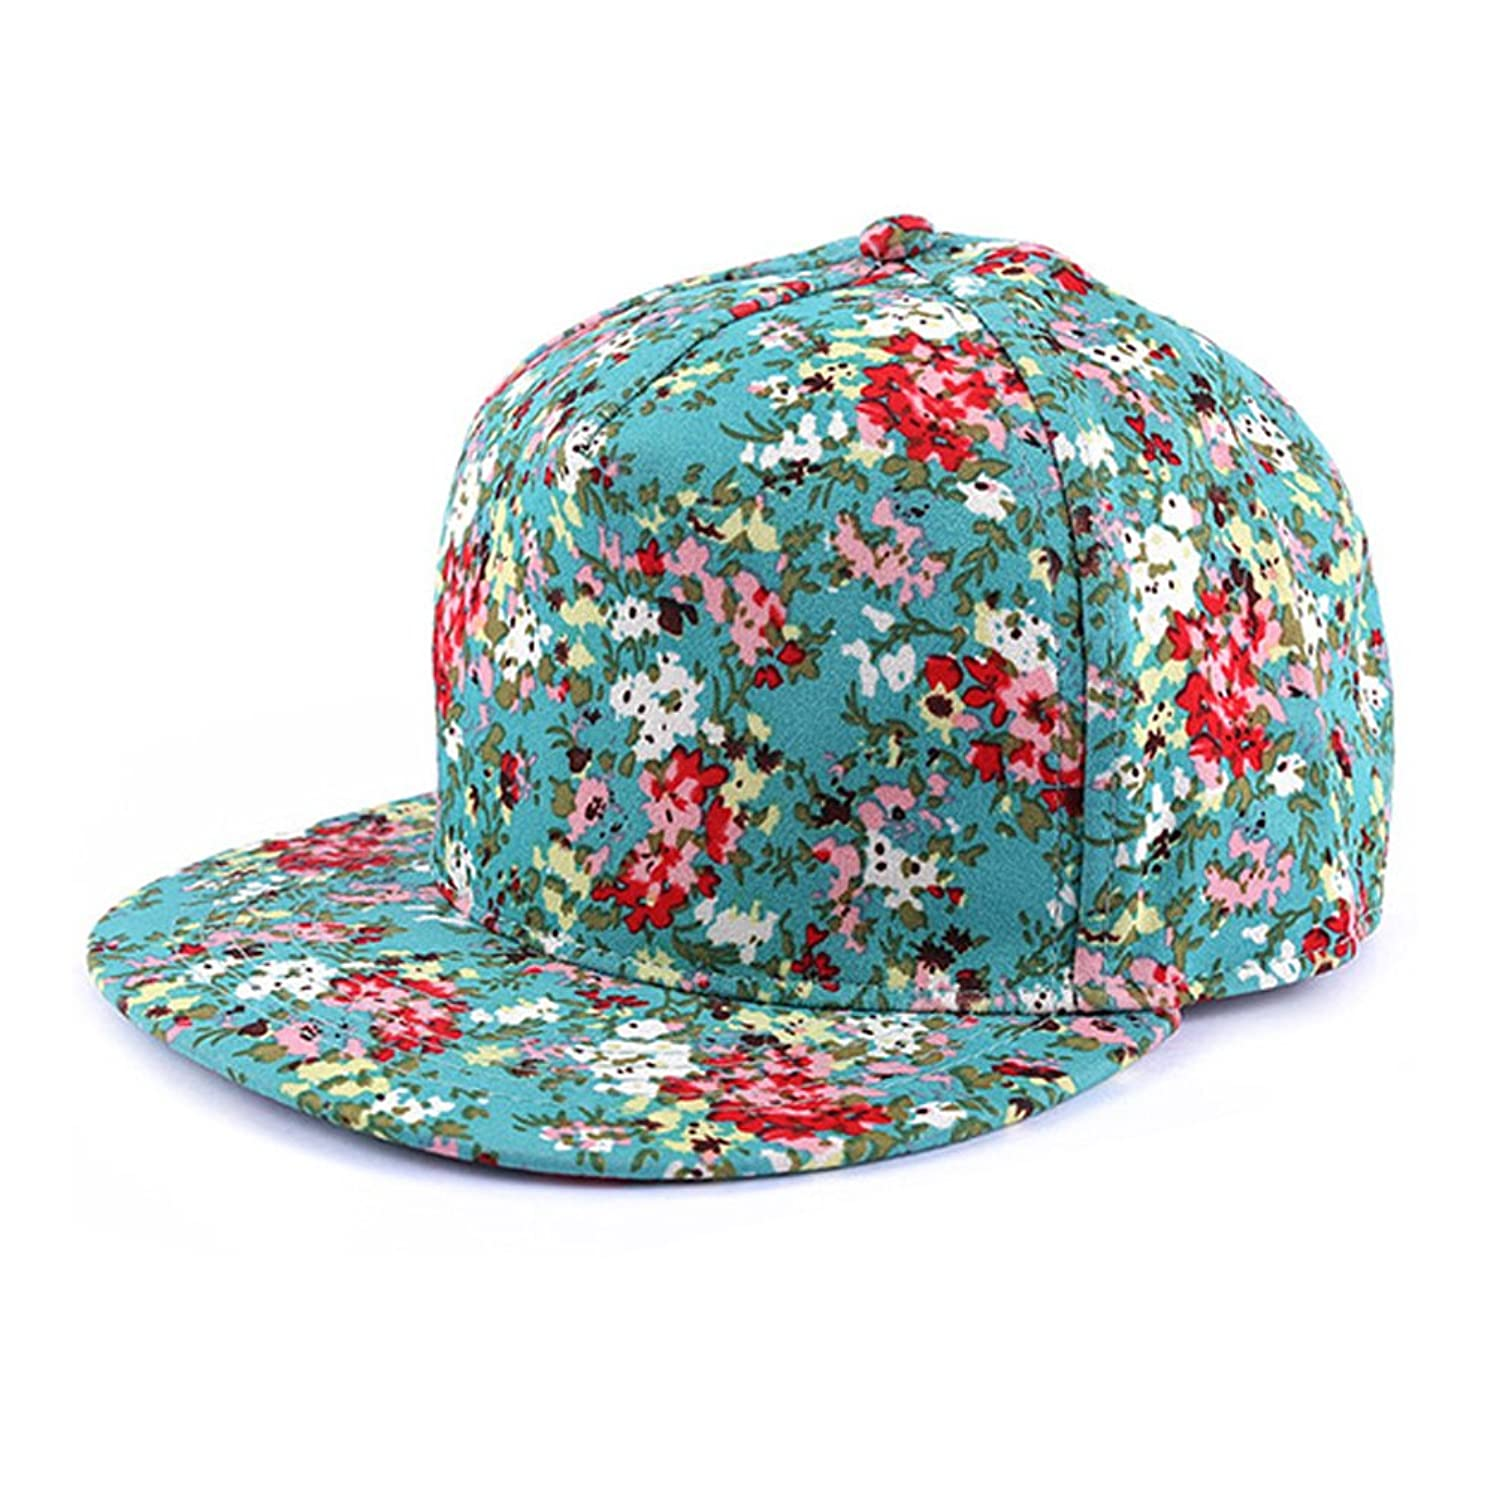 ZLYC Women Fashion Floral Print Adjustable Casual Snapback Baseball Cap Hat snapback women baseball cap casquette cartoon hat for men bone sunscreen fashion gorras casual hip hop 5 panel sun hat